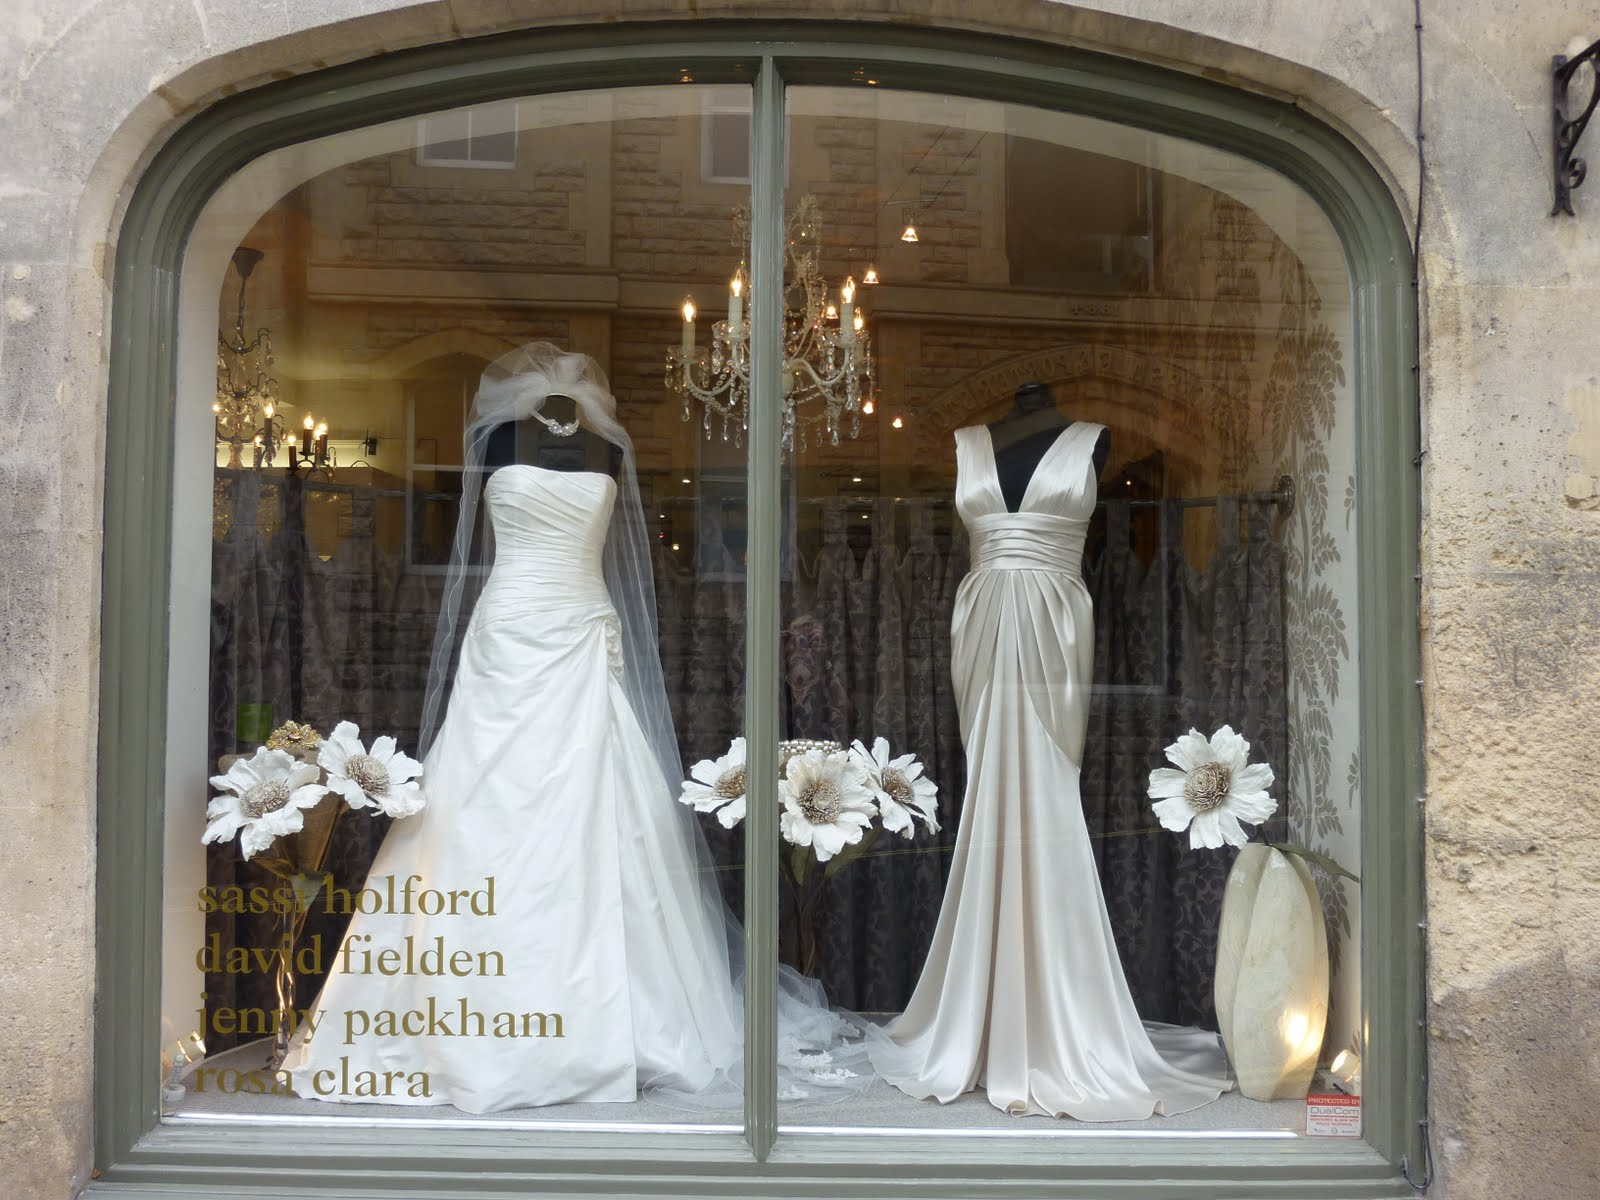 Carina baverstock couture 01 05 11 01 06 11 for How to display a wedding dress